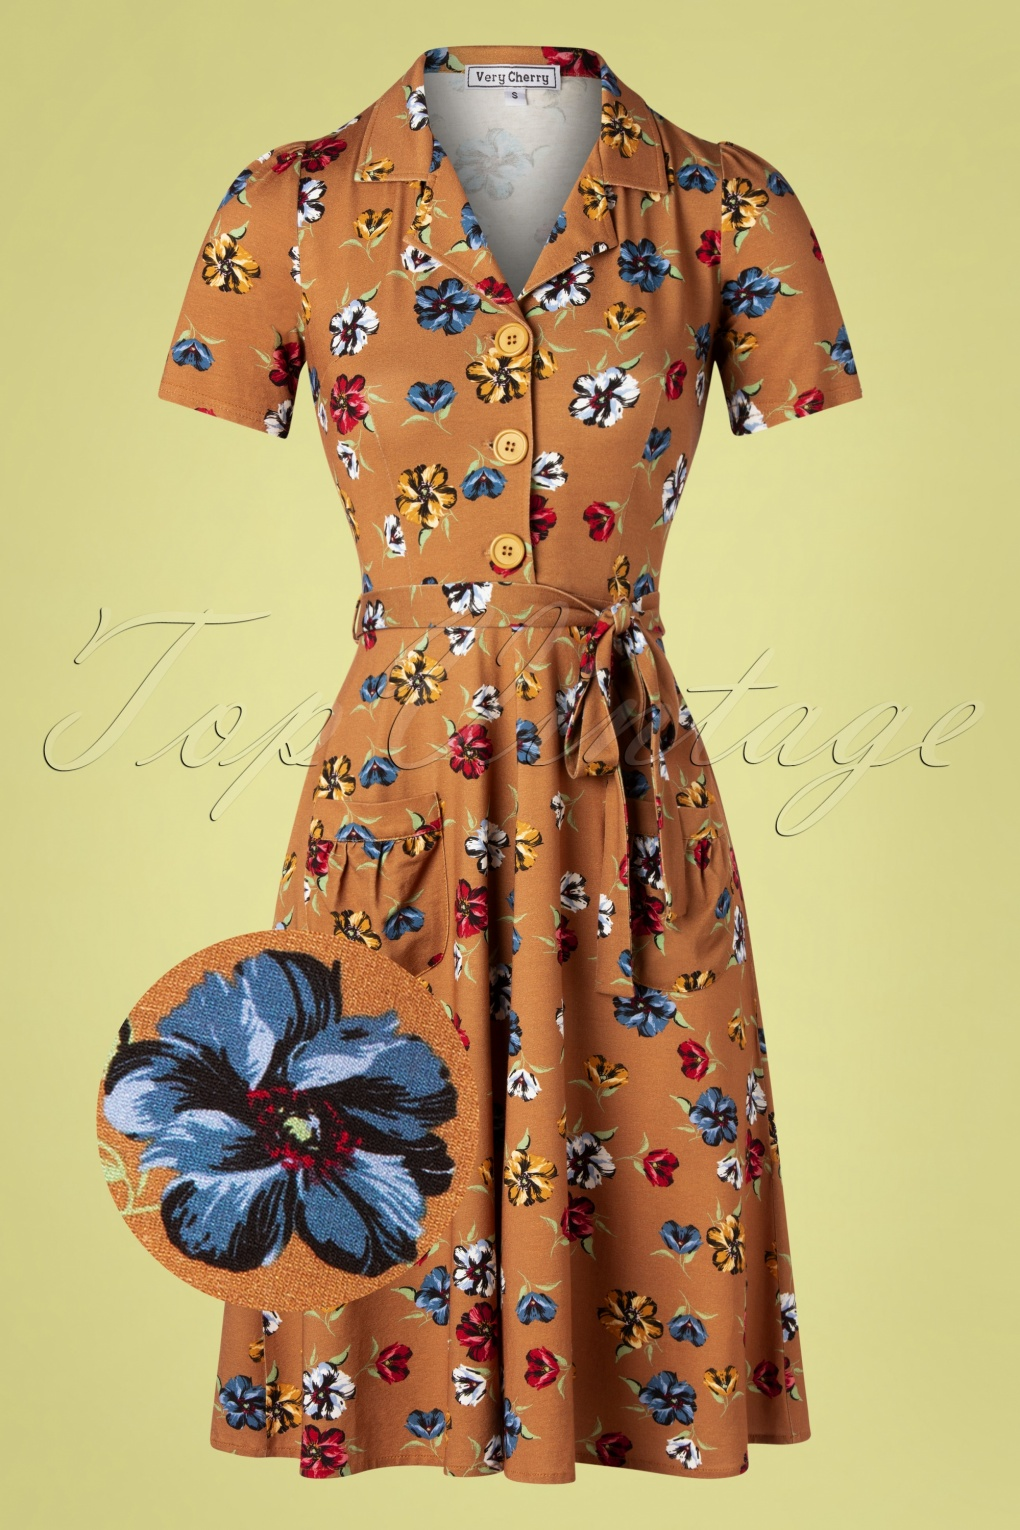 1940s Dresses | 40s Dress, Swing Dress 40s Corniglia Flowers Tricot Revers Dress in Camel £114.02 AT vintagedancer.com